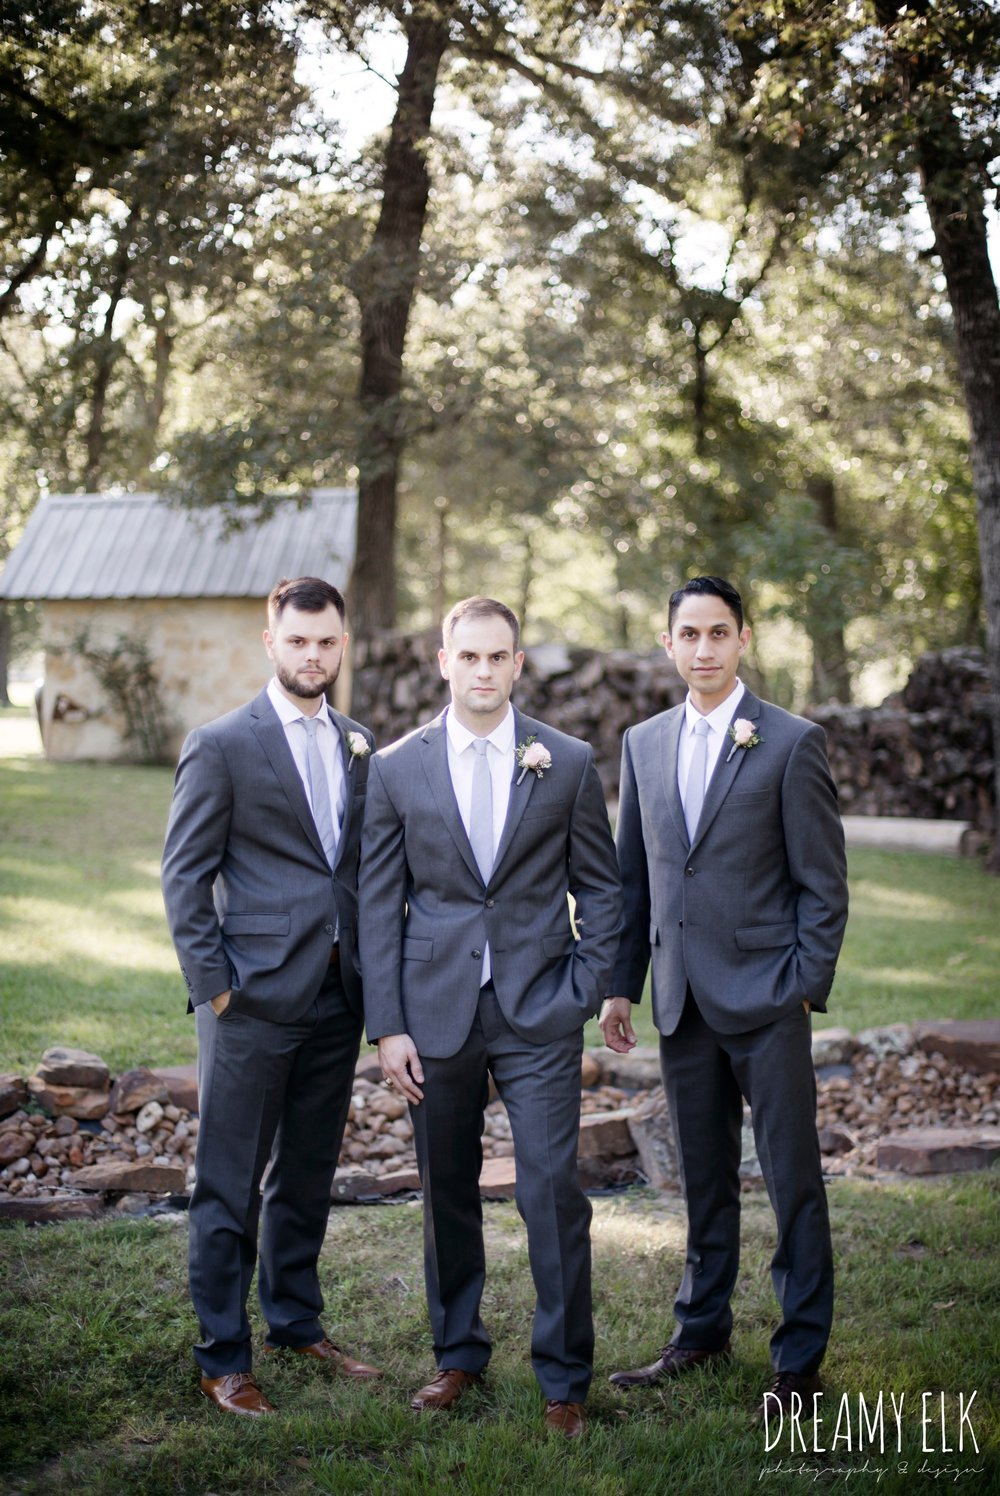 groom and groomsmen, gray jos a bank suit, outdoor fall october wedding photo, blush and gray wedding, balmorhea weddings and events, dreamy elk photography and design, austin texas wedding photographer